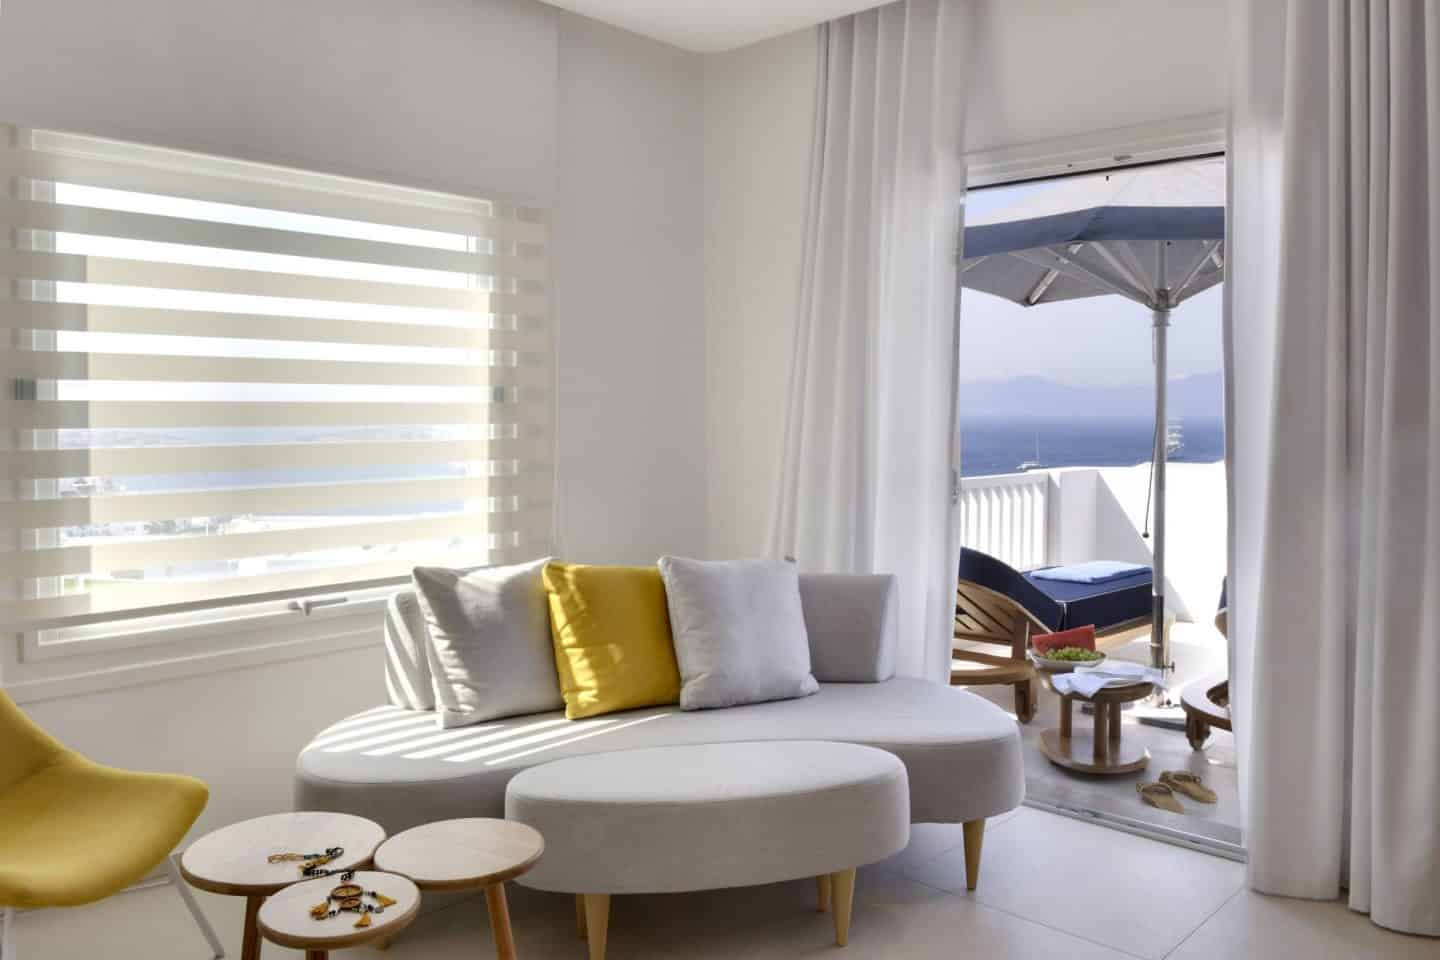 Myconian Kyma Hotel in Mykonos Greece - Design Hotel